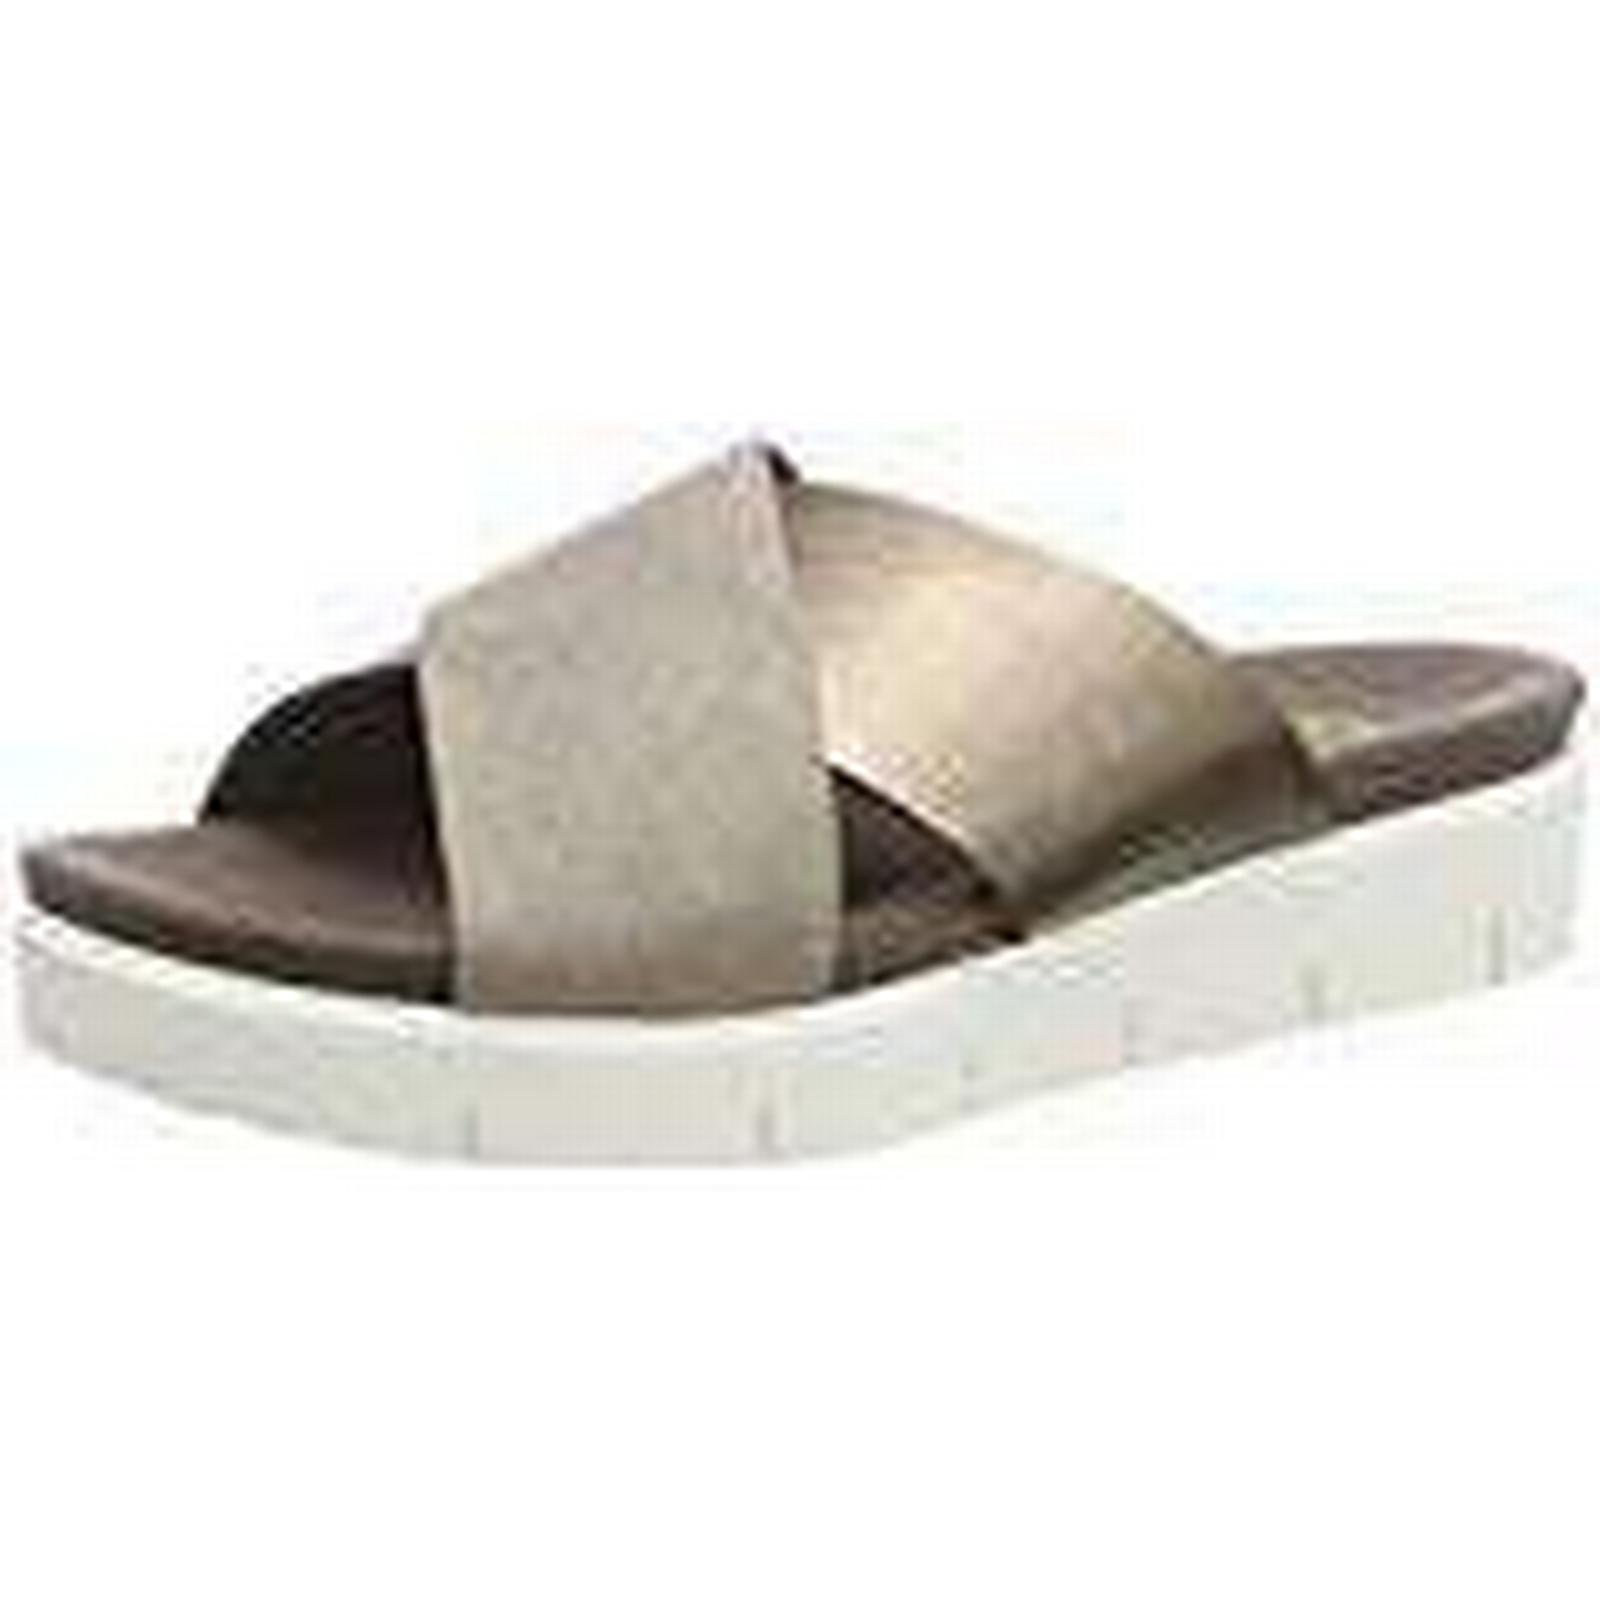 Gabor Women's Comfort Sport-82.7 Ankle Silber), Strap Sandals, Brown (Koala/a Silber), Ankle 8 UK 740251